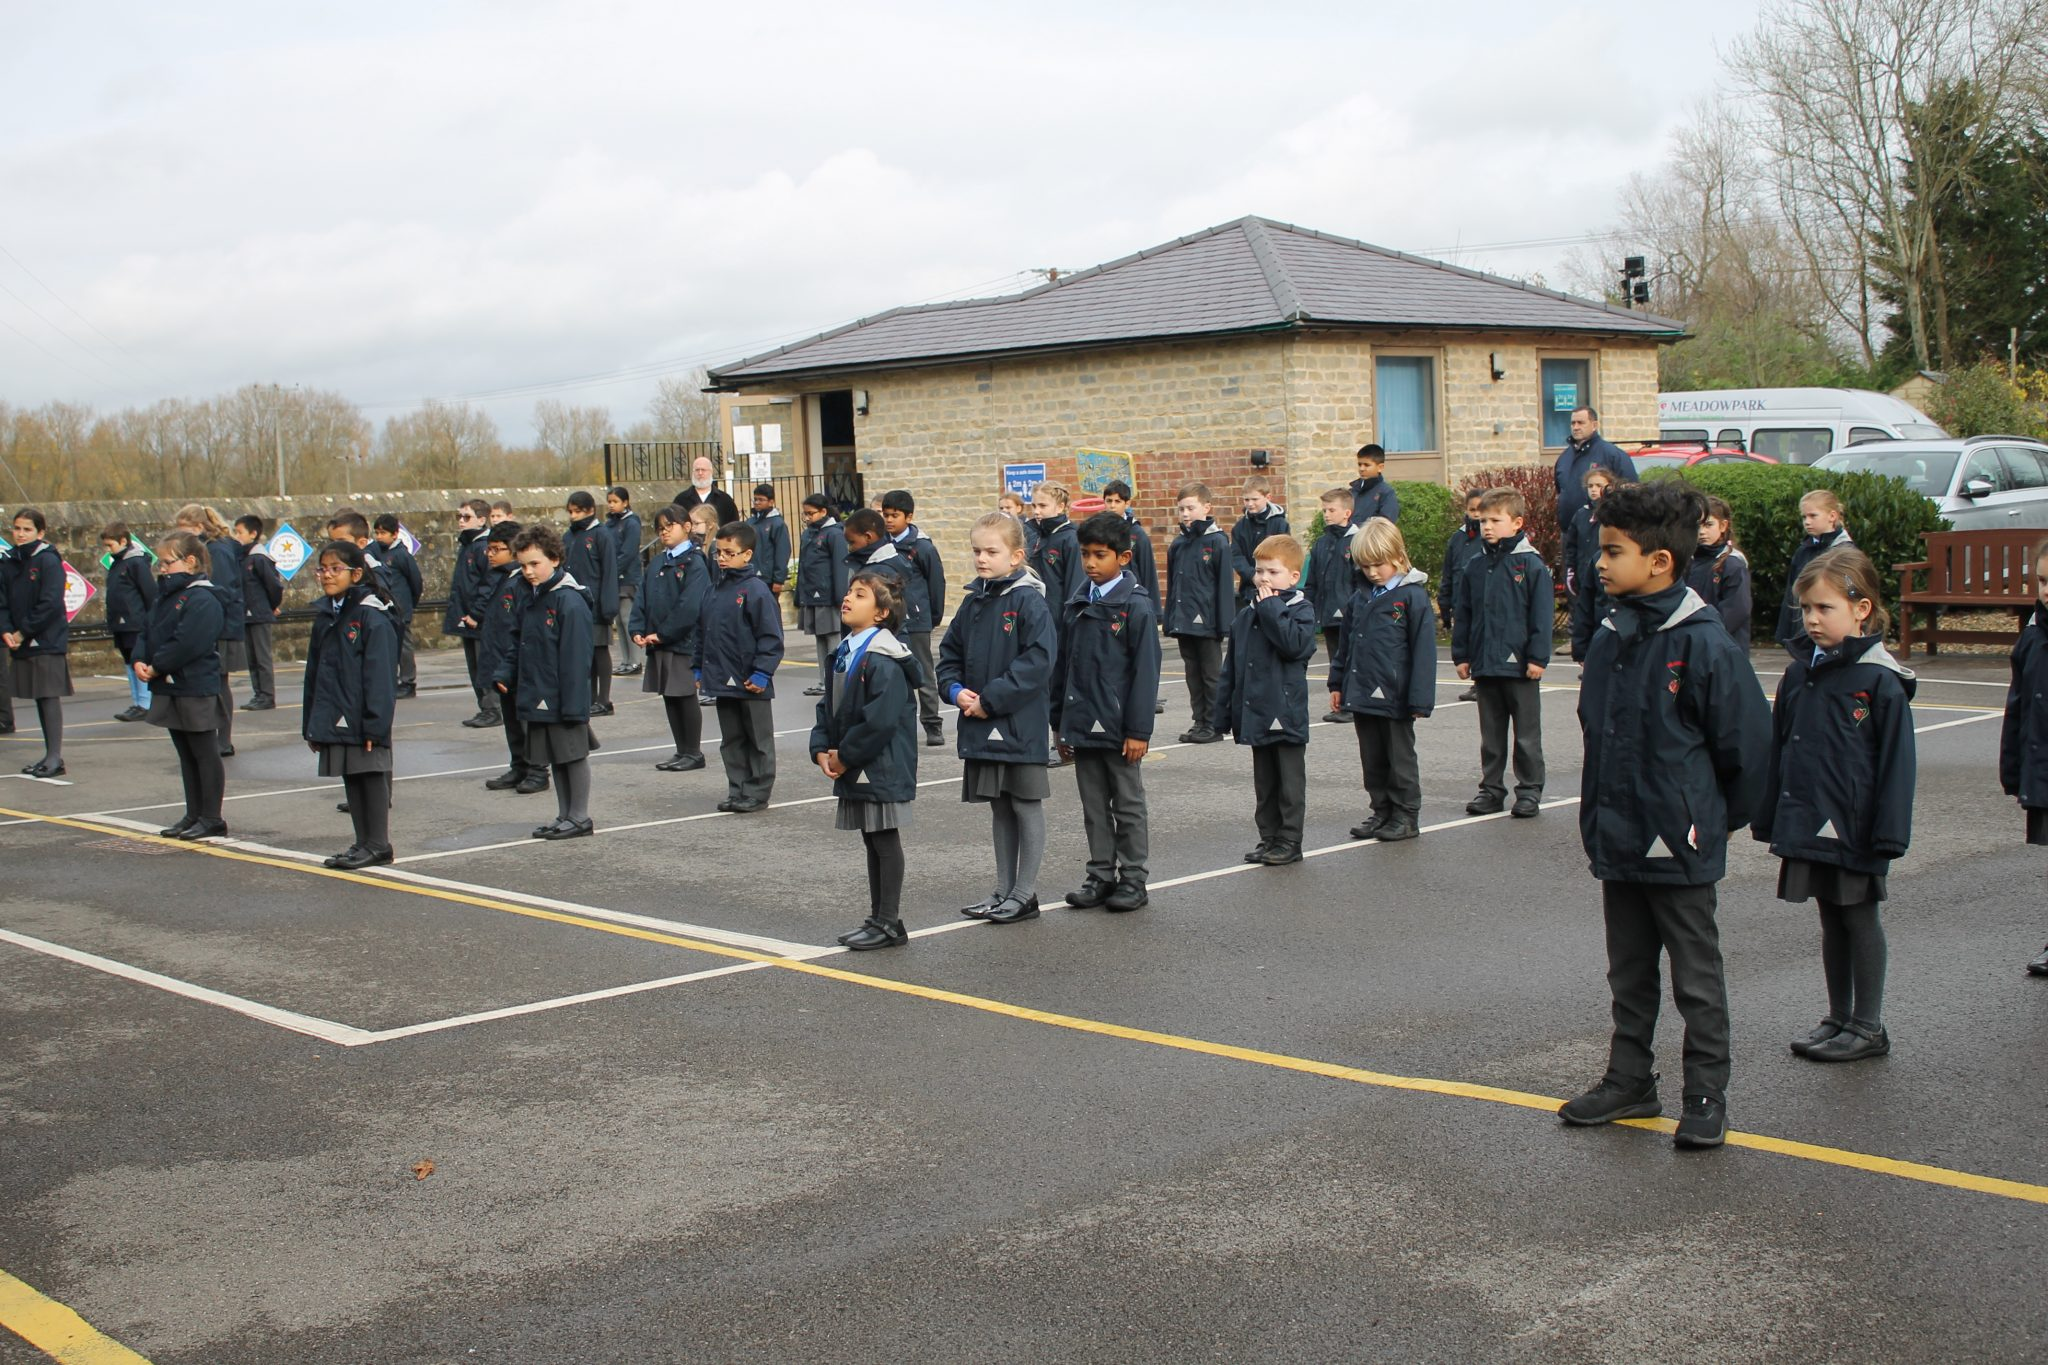 Remembrance at Meadowpark School